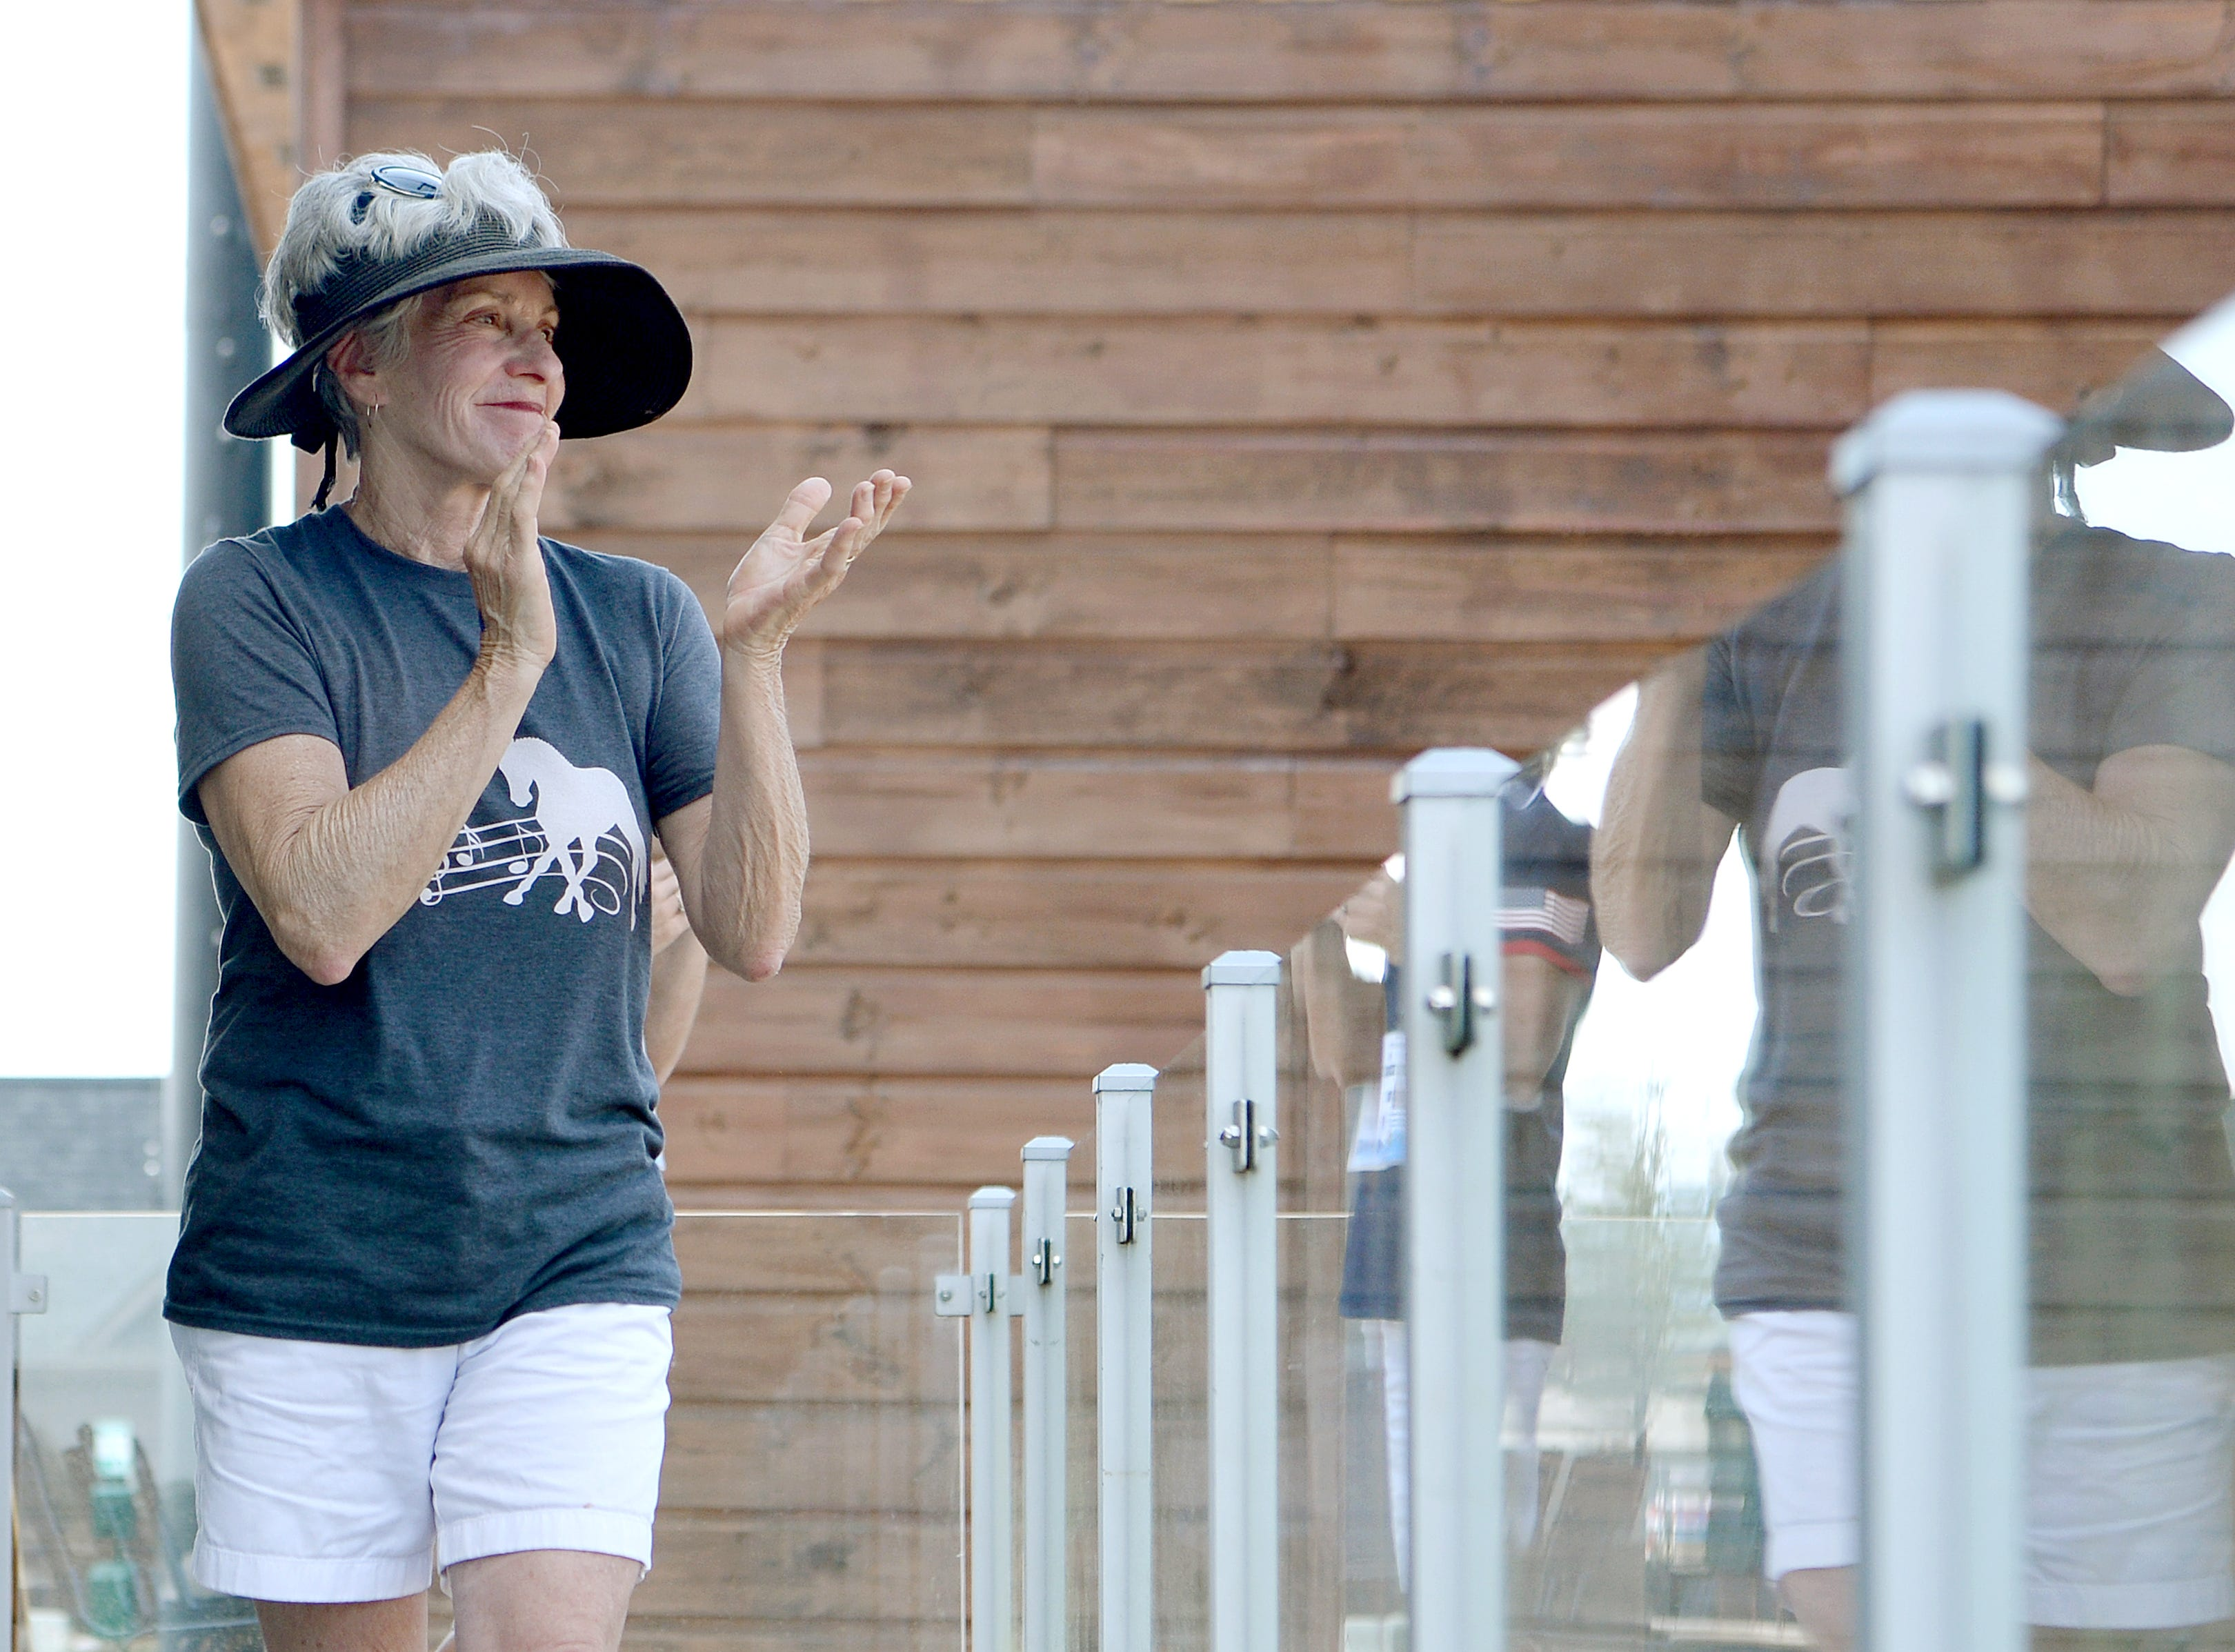 Marlene Whitaker, of Fairview, applauds for American Angela Peavy after her performance in the Para-dressage event of the FEI World Equestrian Games at the Tryon International Equestrian Center on Sept. 20, 2018. Whitaker created the choreography for Peavy's freestyle competition.